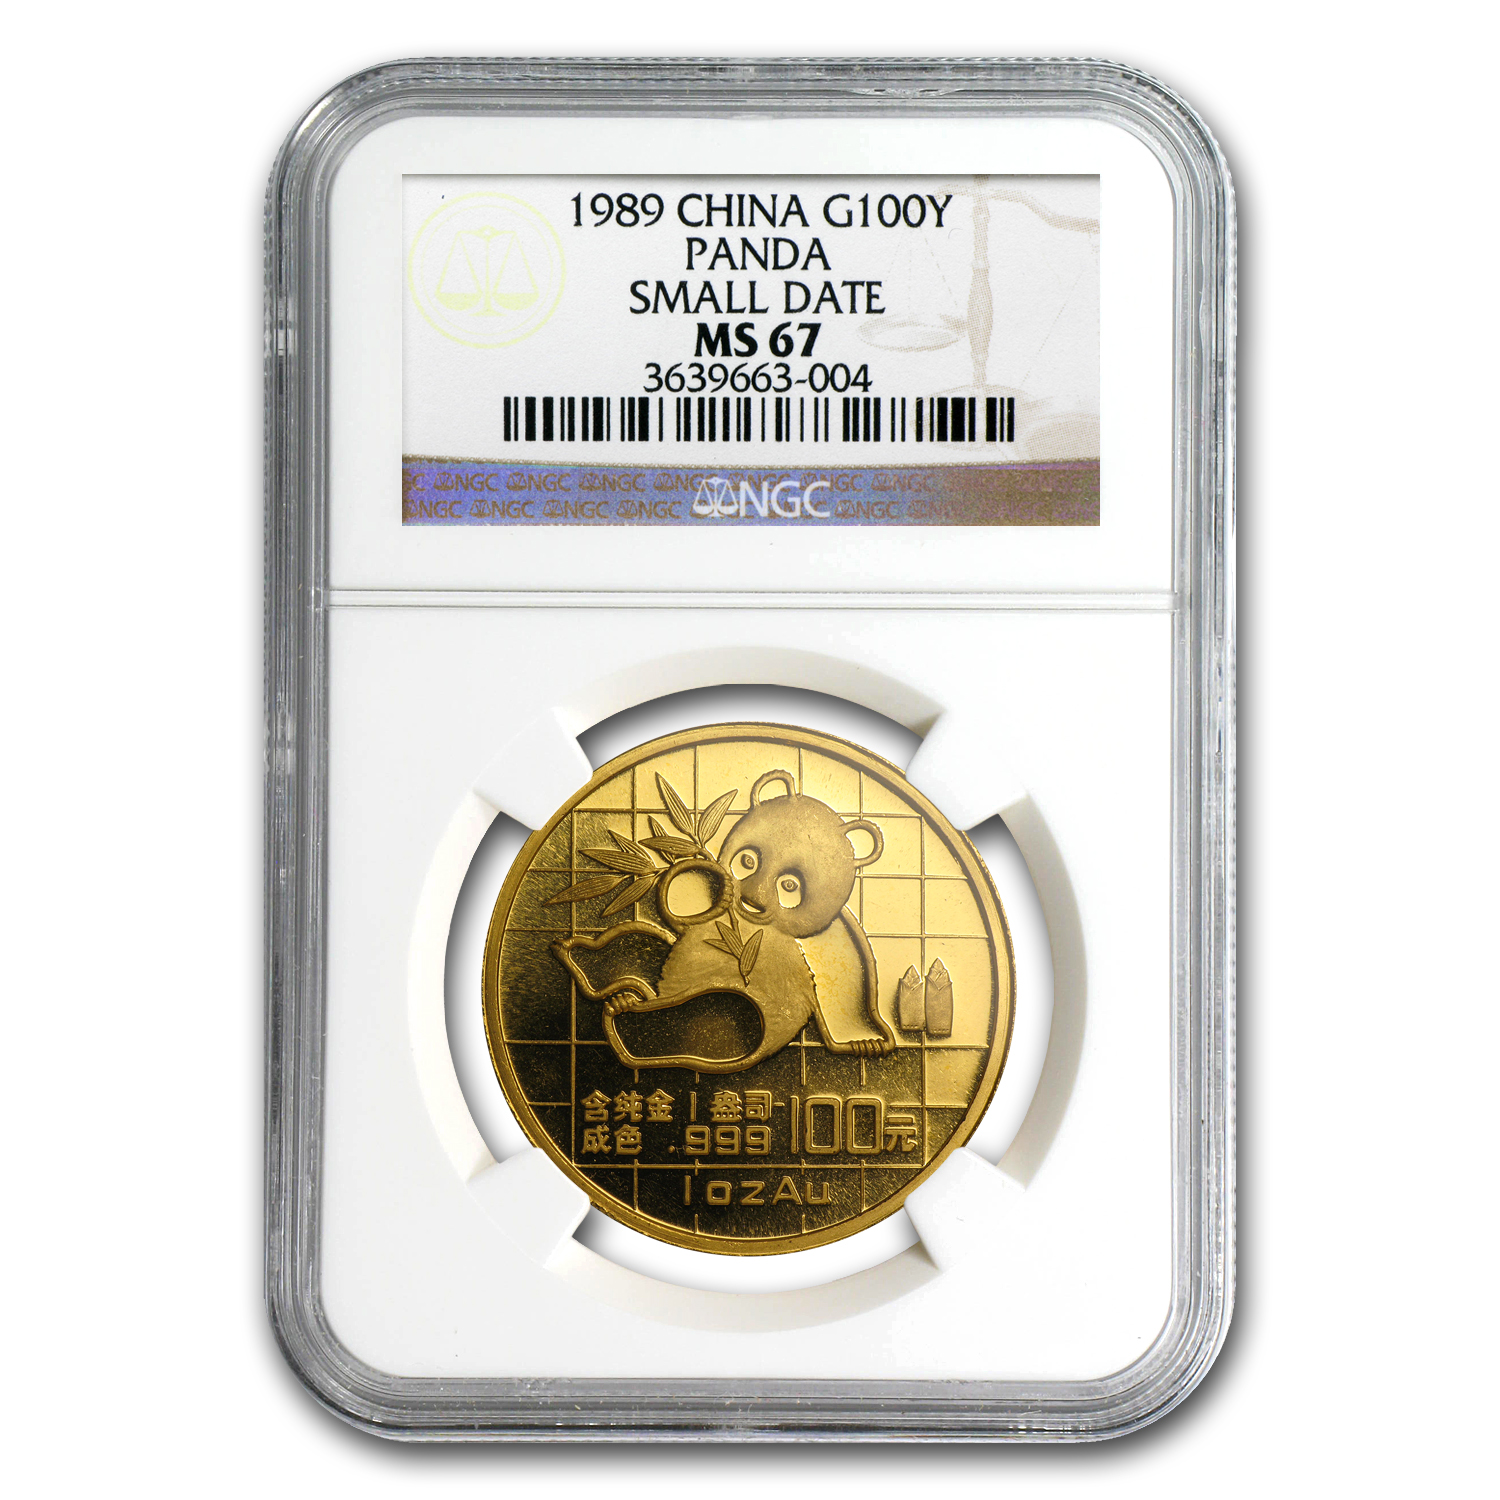 1989 China 1 oz Gold Panda Small Date MS-67 NGC